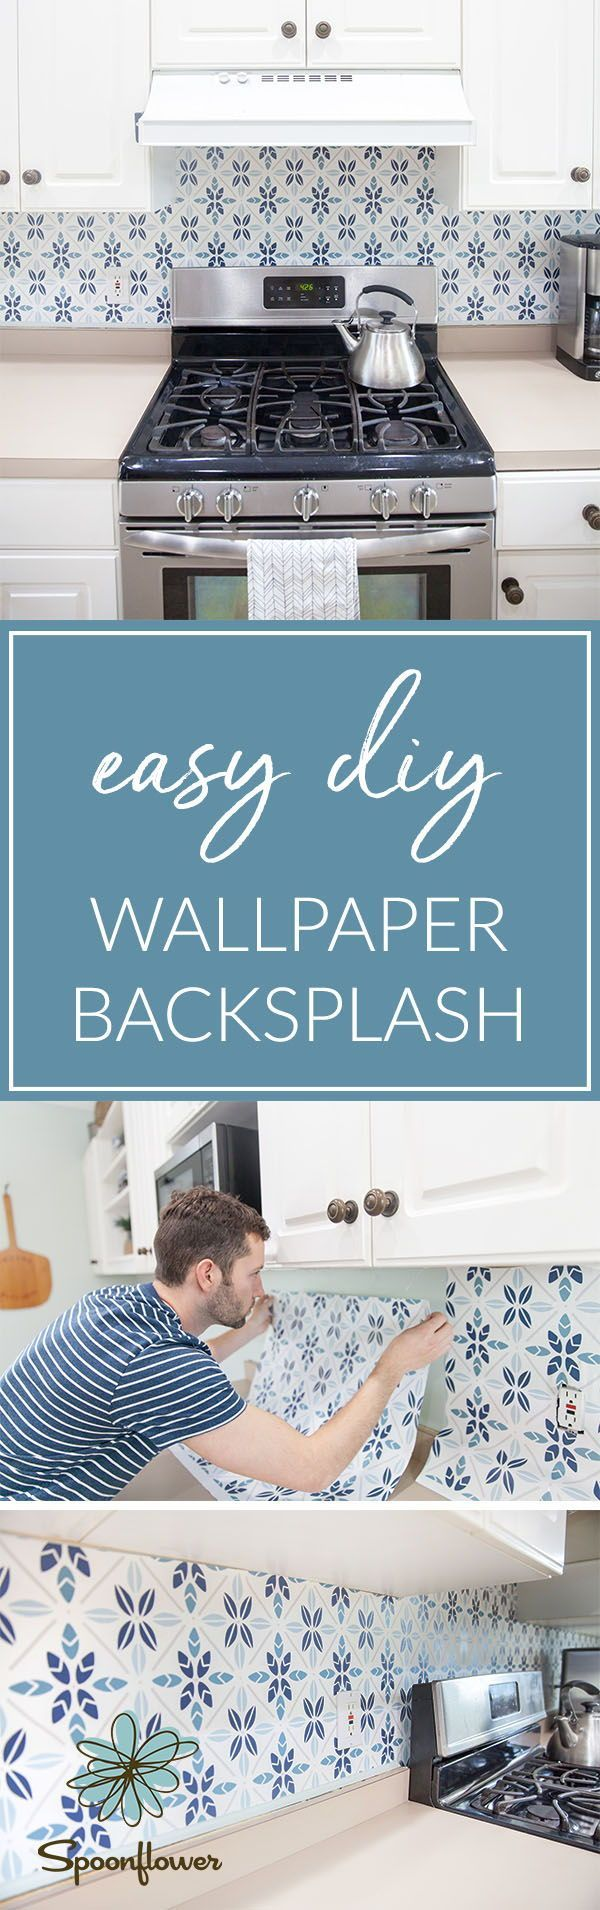 Easy Faux Tile Backsplash with Eco-Friendly Wallpaper – Whether you ...